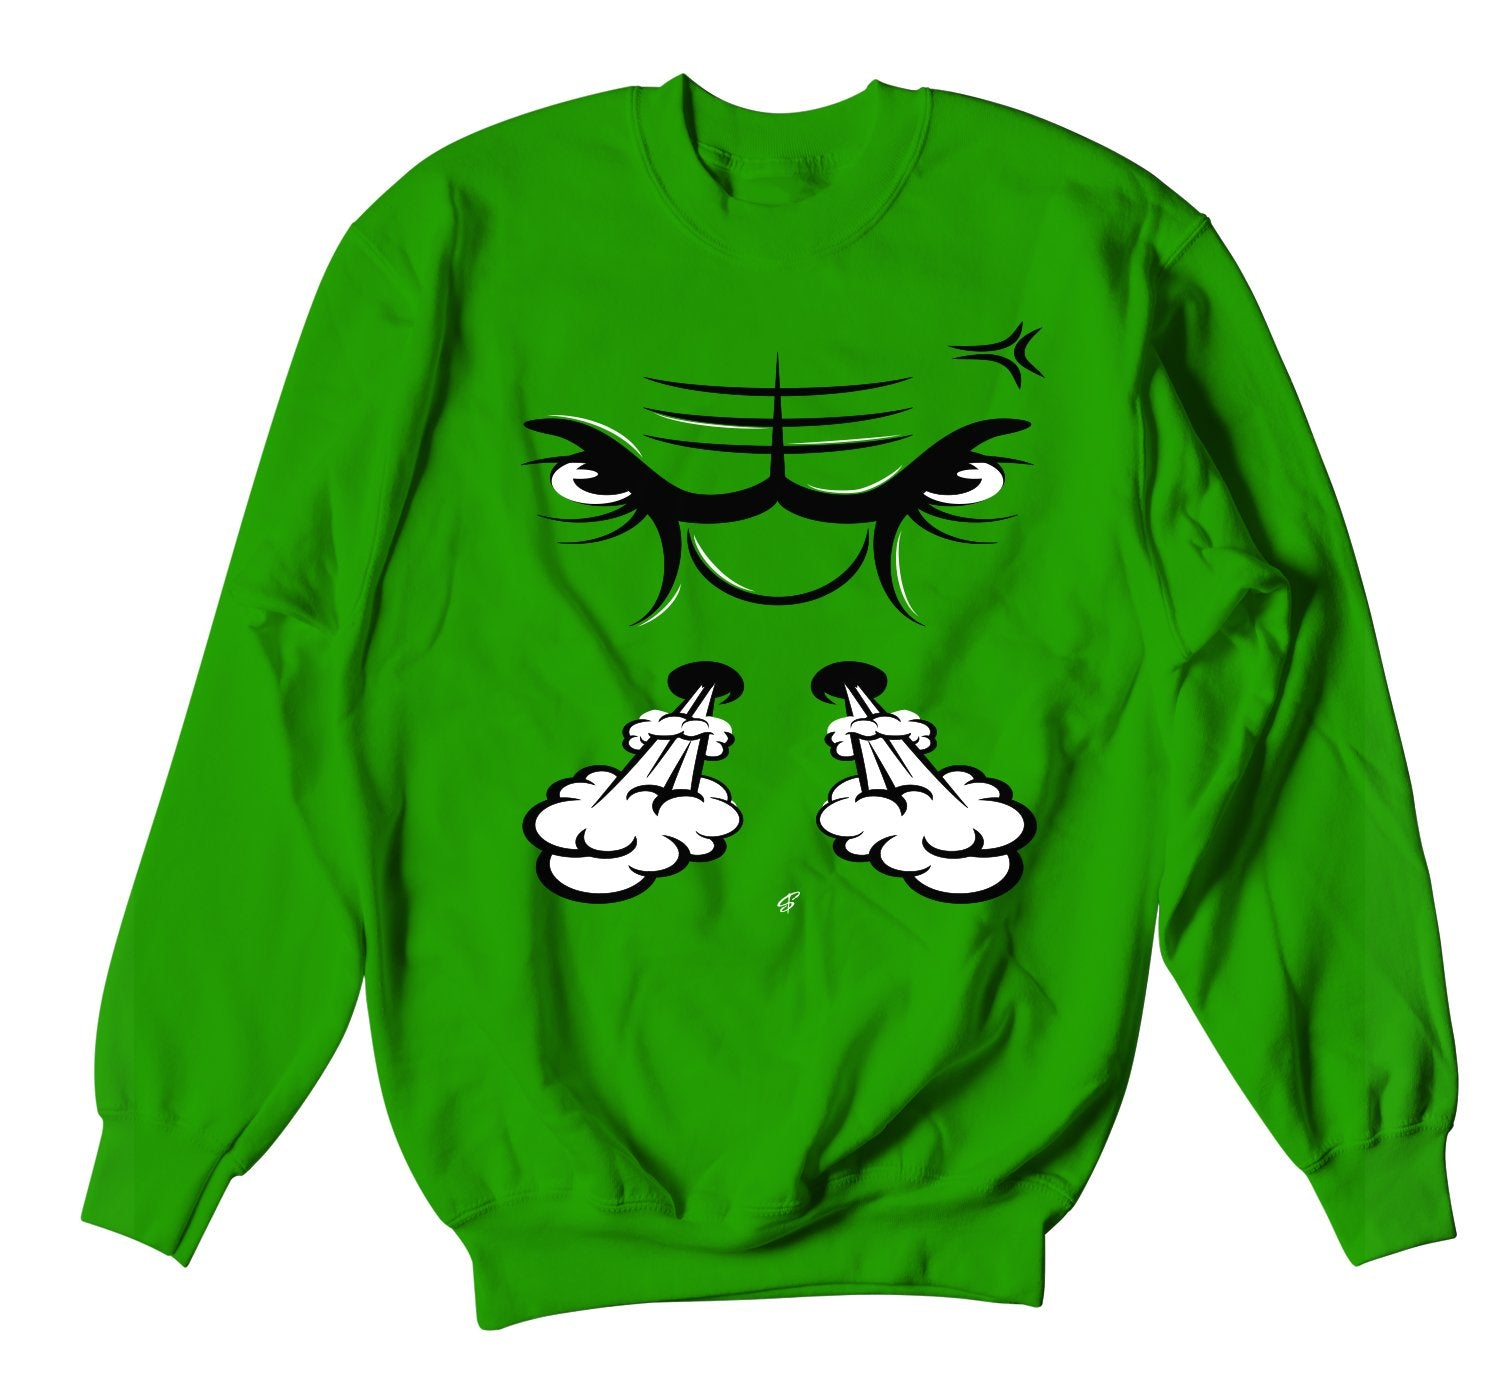 Jordan retro 1 pine green sneaker collection has matching crewneck sweaters